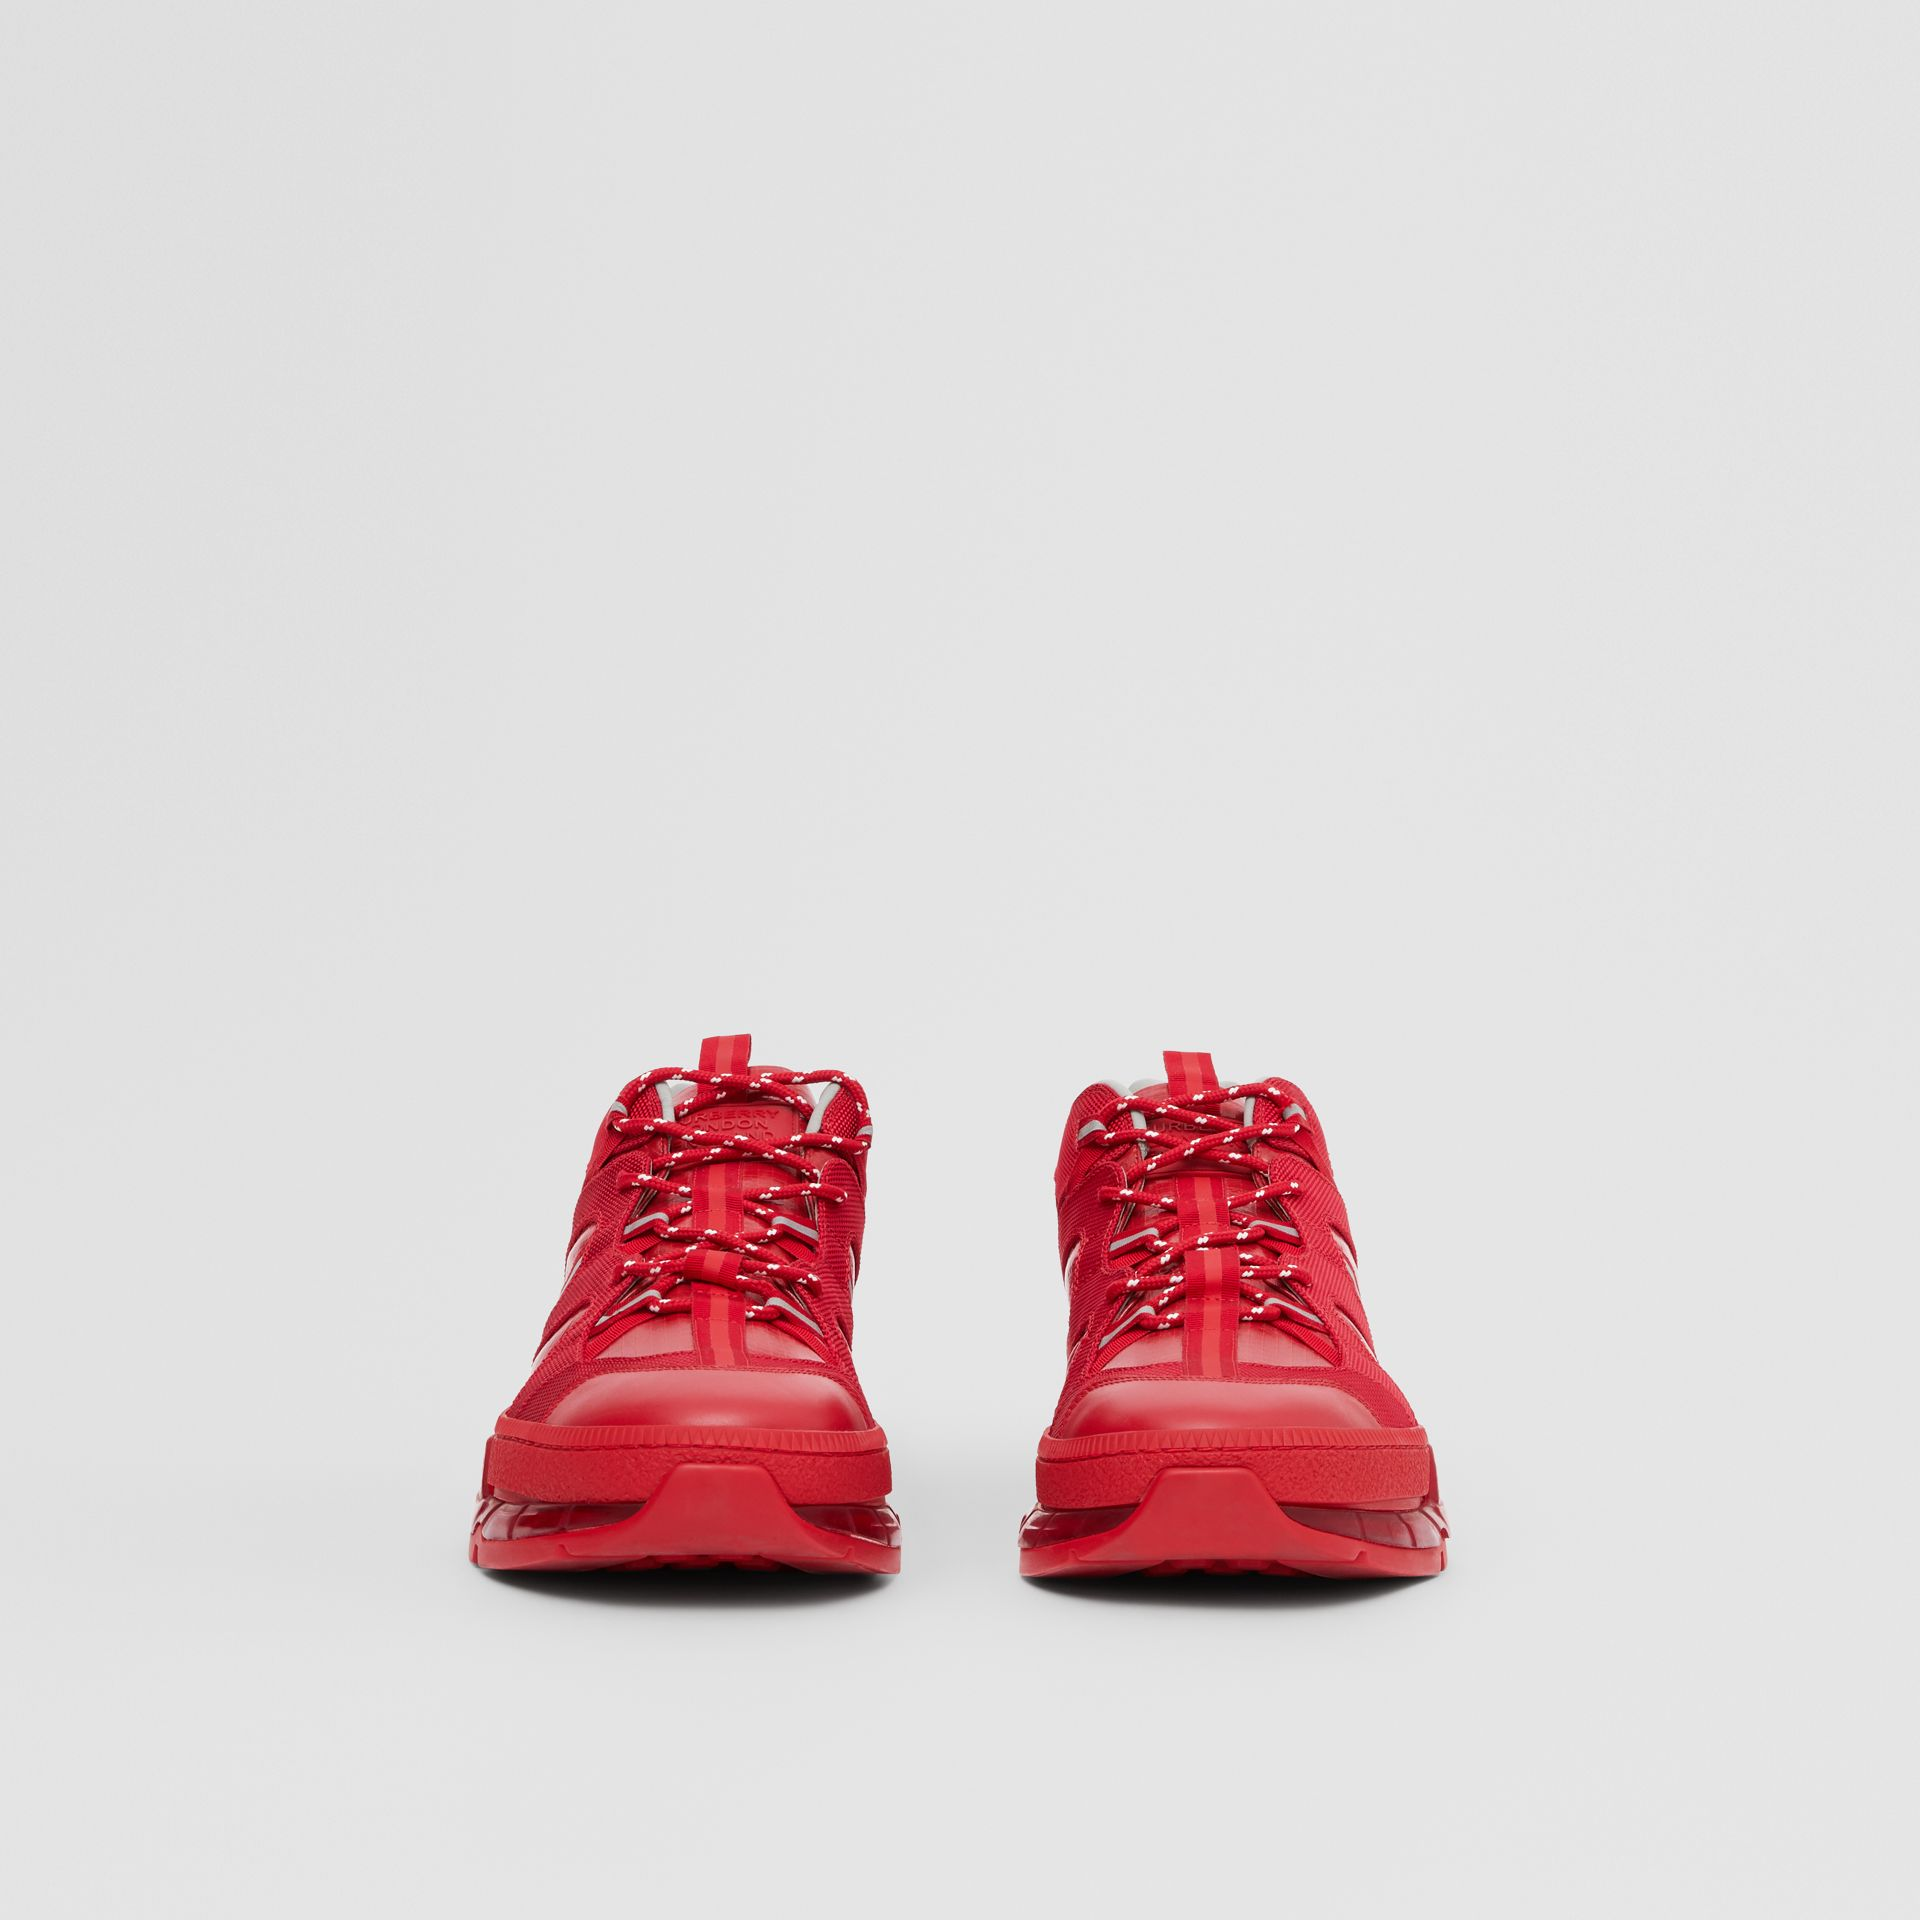 Nylon and Leather Union Sneakers in Bright Red - Women | Burberry - gallery image 1